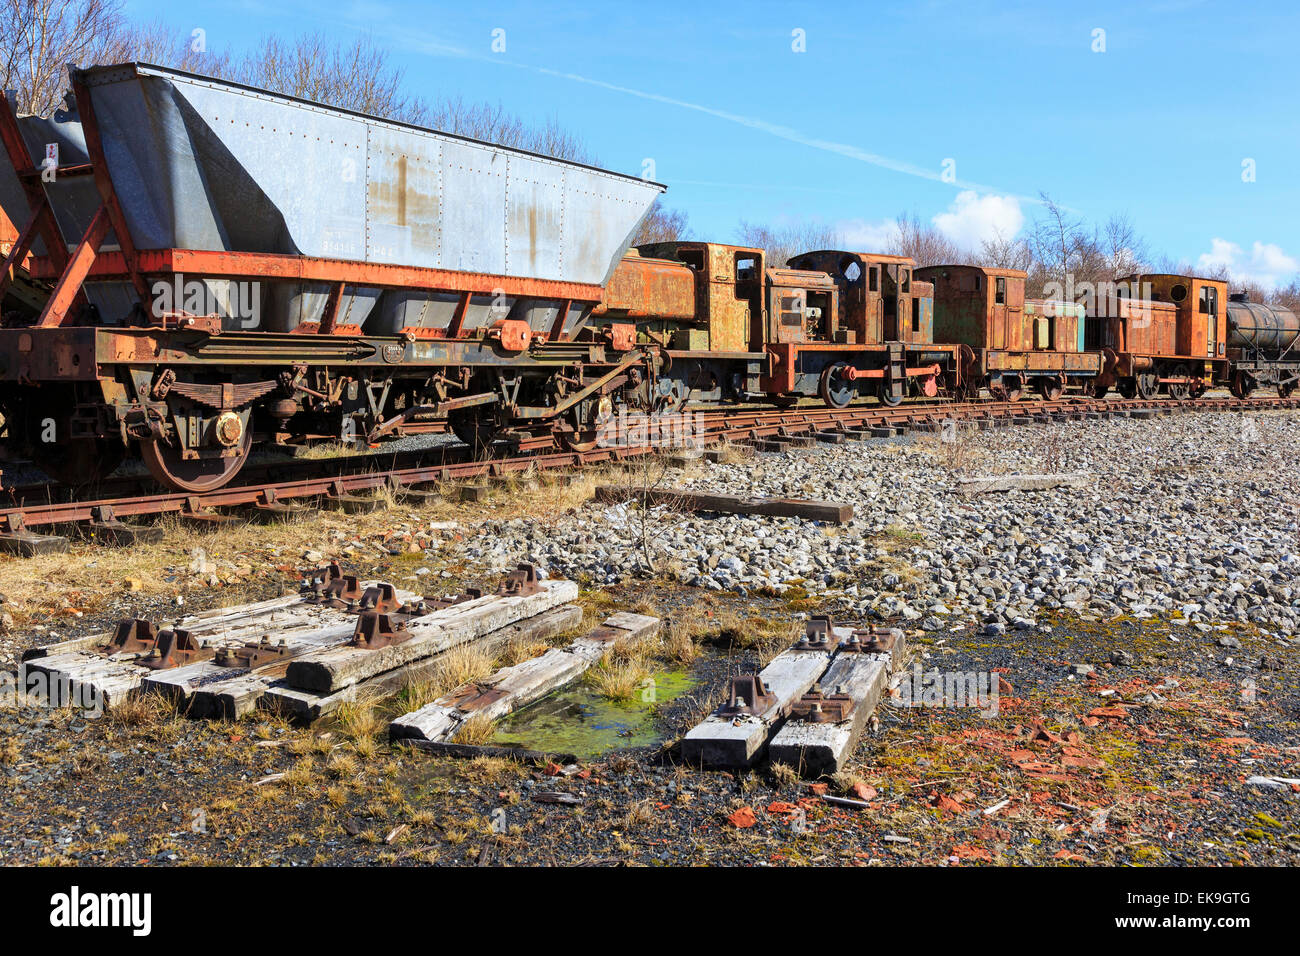 Old and abandoned rusting steam trains and railway carriages, Ayrshire, Scotland, UK - Stock Image